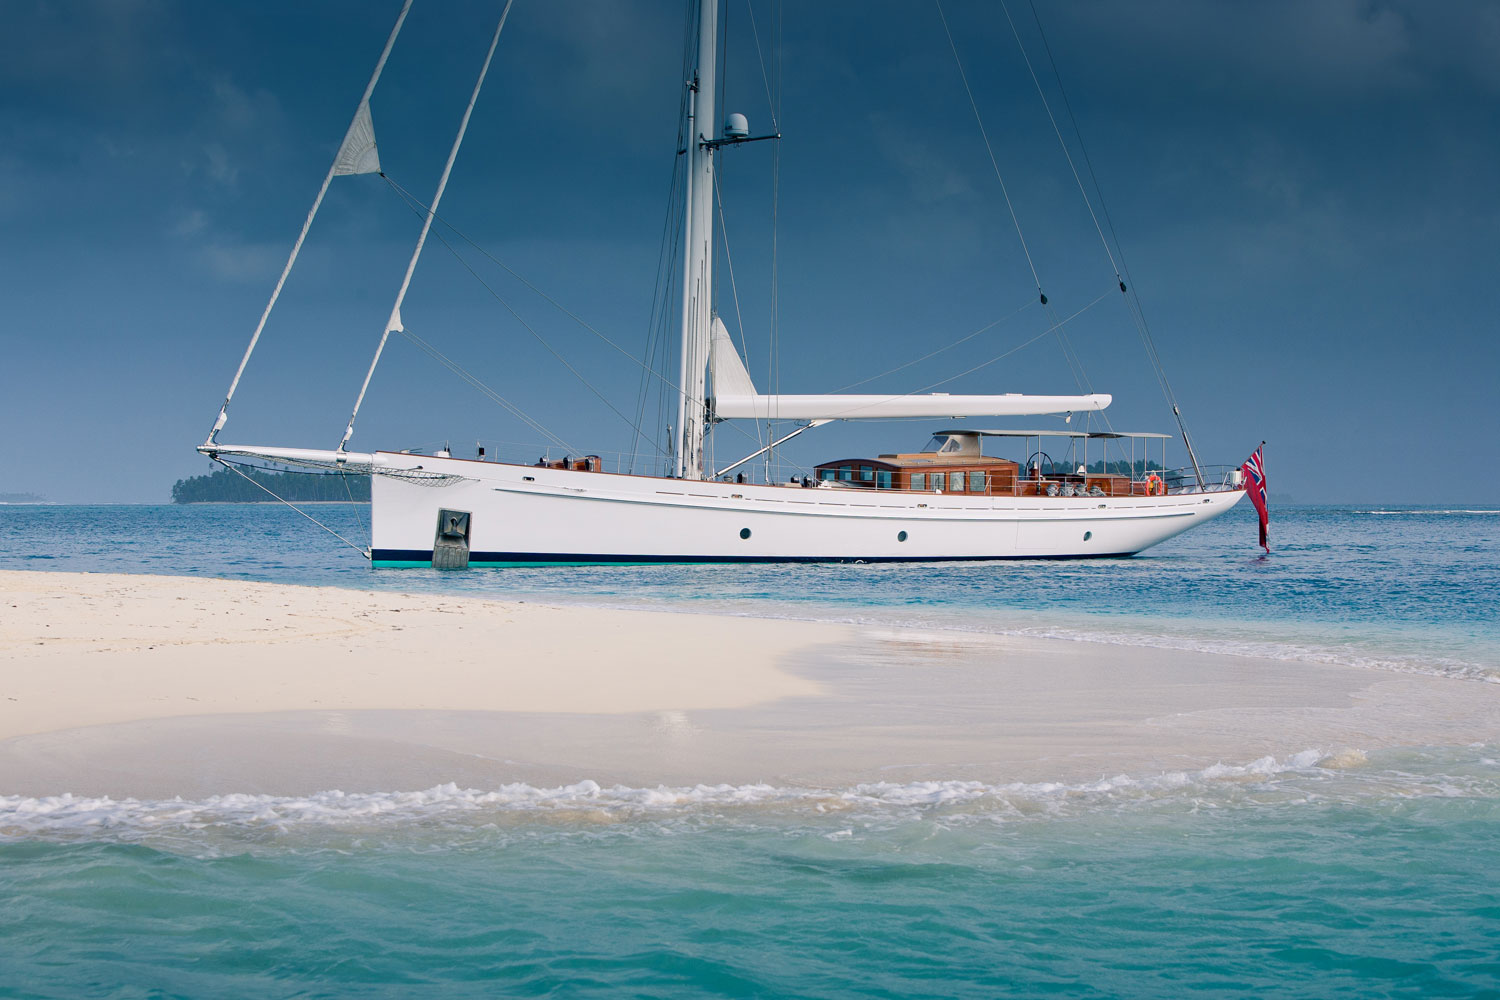 Caribbean Yacht Charter | 2020/21 Yachts & Guide